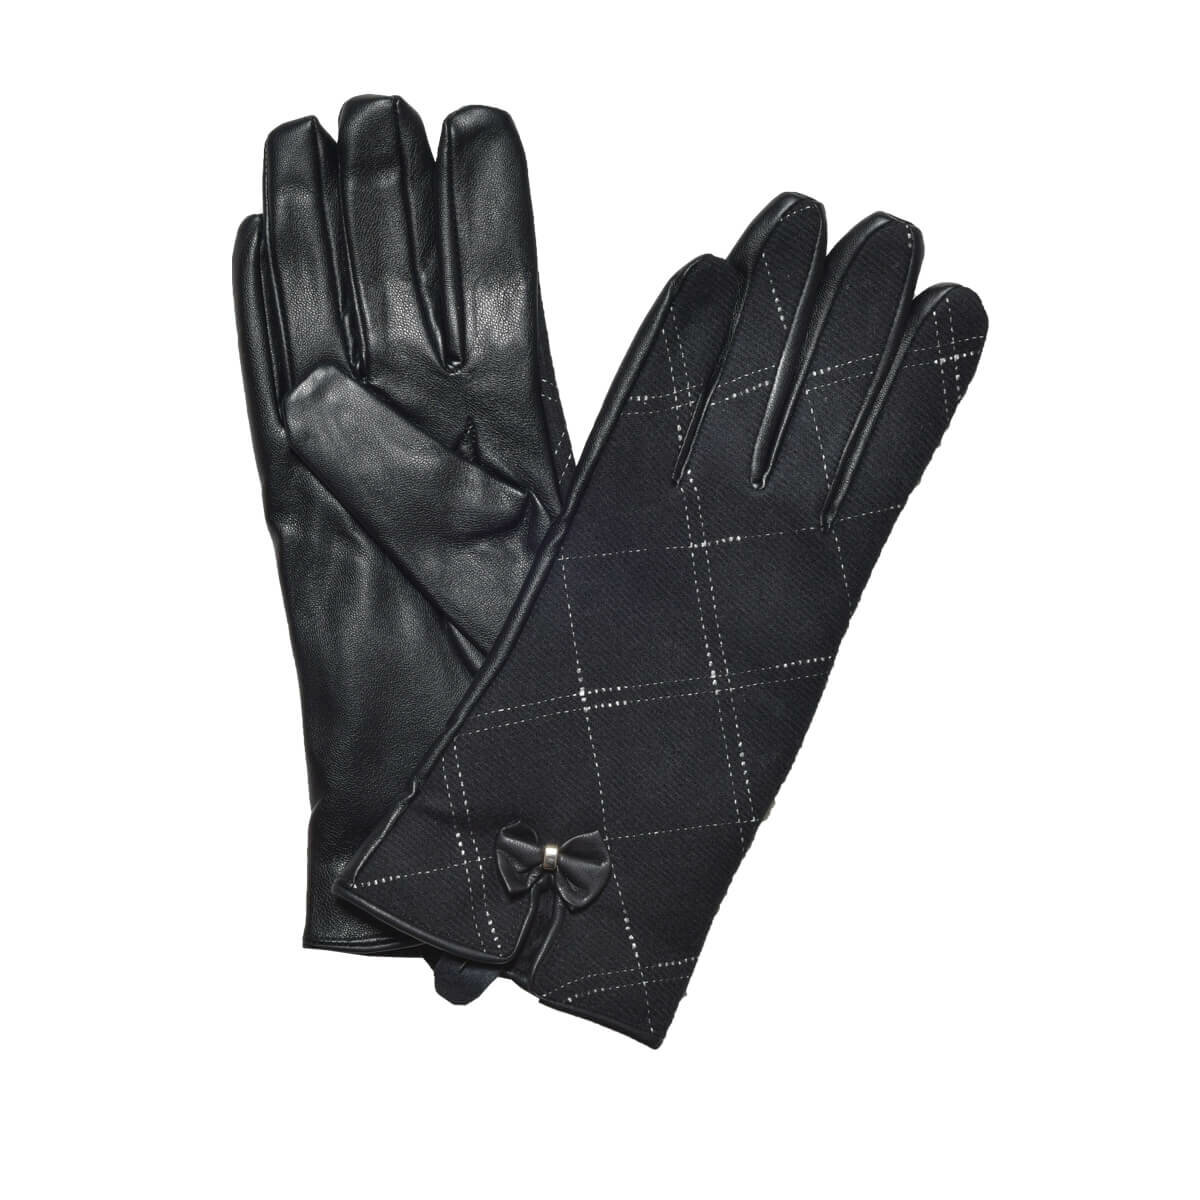 FLO ELD 11078 85Z Black Women 'S Gloves BUTIGO